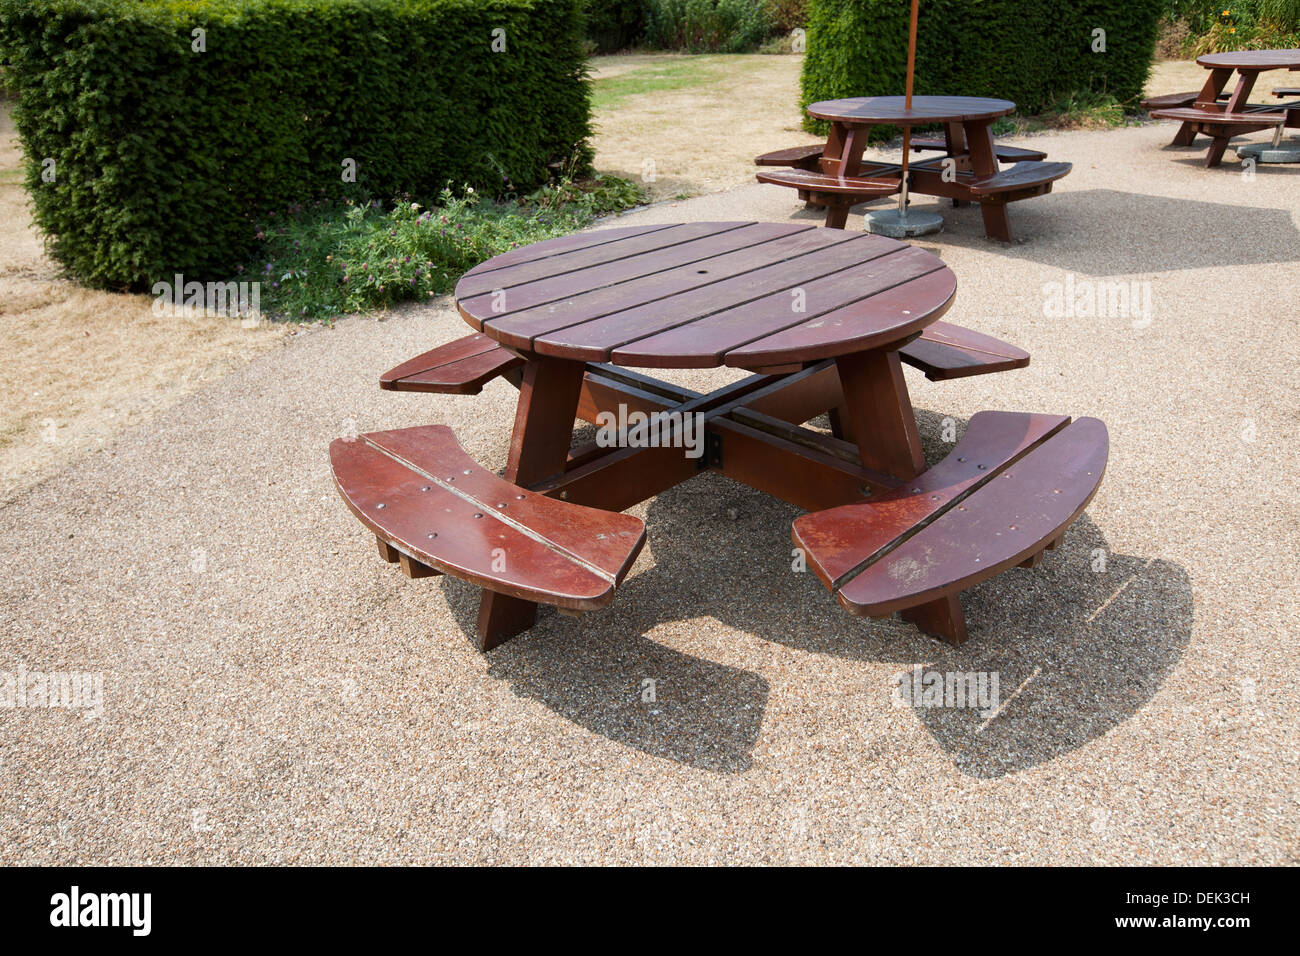 tables benches master hayneedle cfm pine yellow product table furniture cross with legged picnic wooden a l